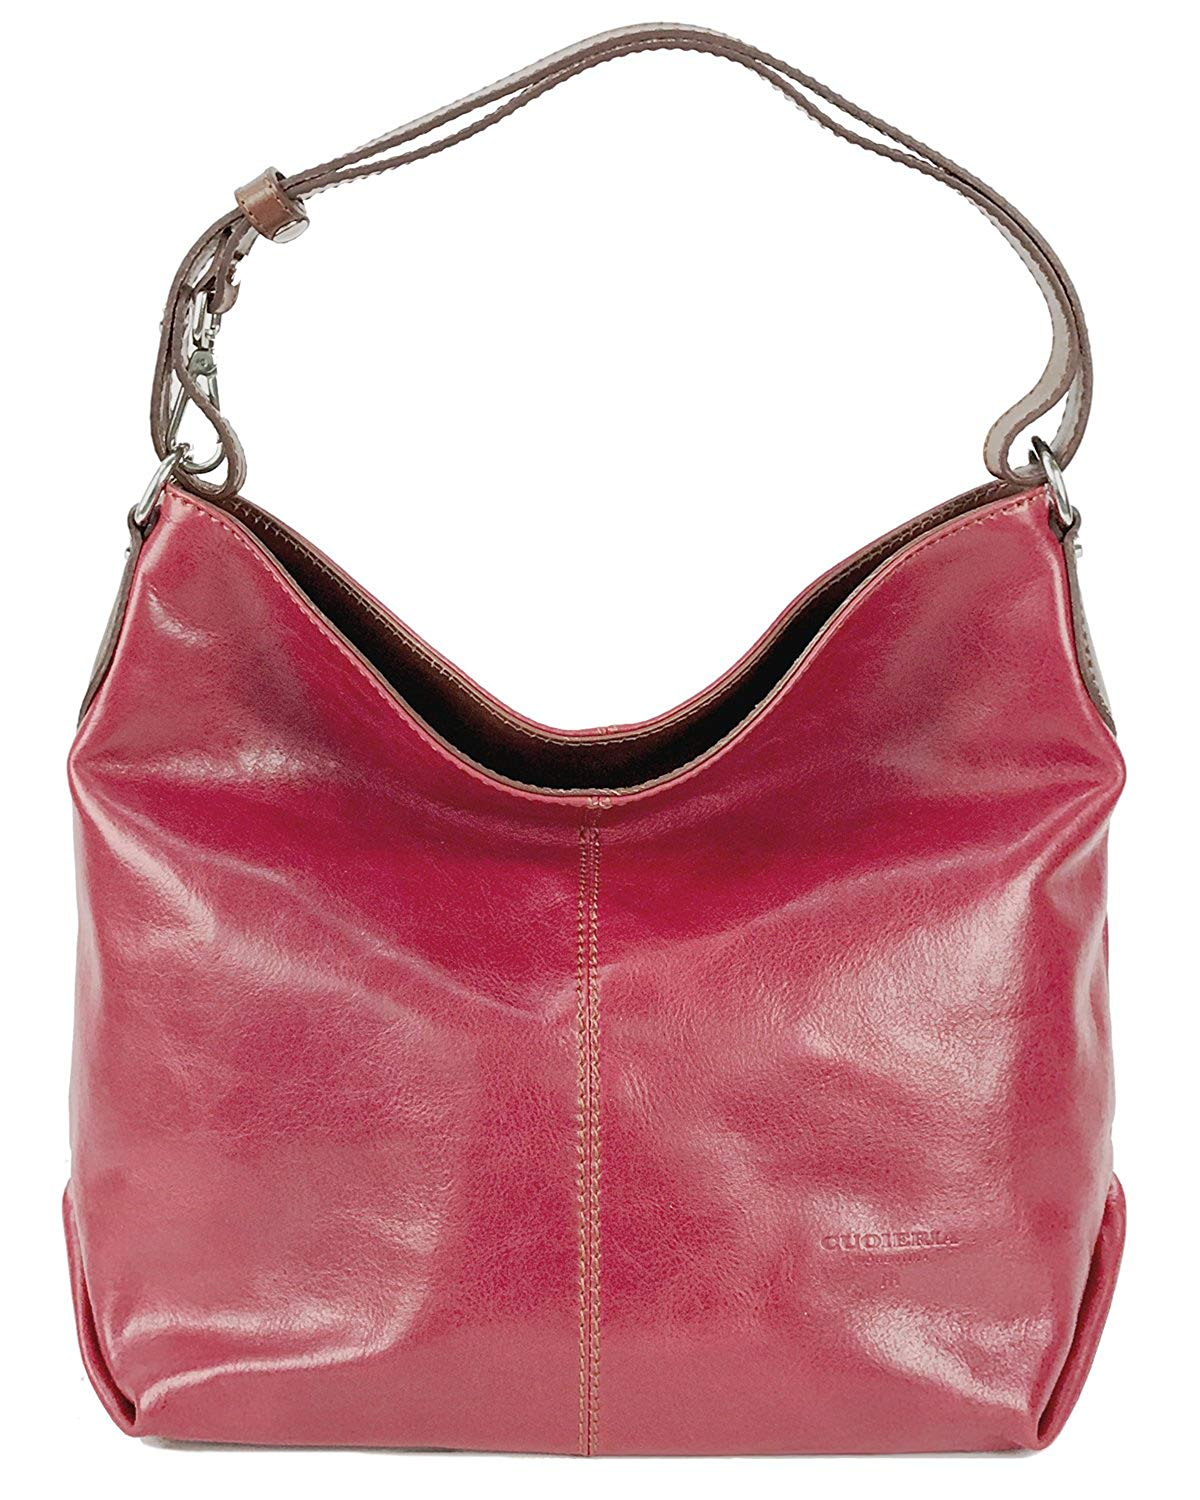 Get Quotations Cuoieria Fiorentina Italian Leather Hobo Handbag